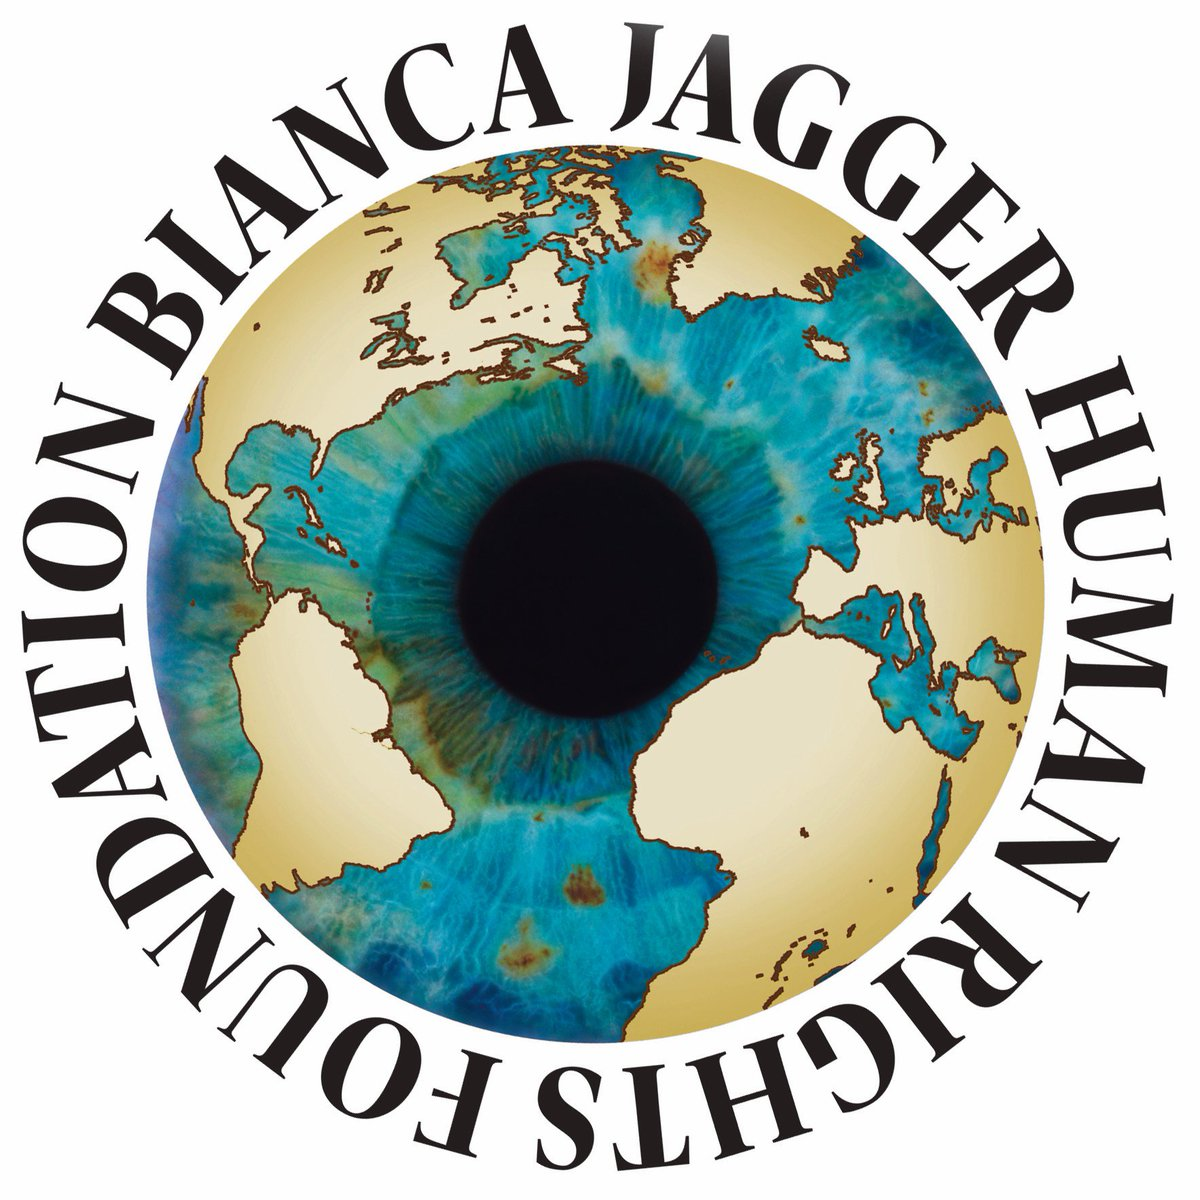 The Bianca Jagger Human Rights Foundation #BJHRF denounces the criminal attack of the #RepressiveStateApparatus of the #OrtegaMurillo murderous regime against the unarmed students, entrenched in the National Autonomous University of #Nicaragua #UNAN @CIDH@PauloAbrao@UNHumanRights<br>http://pic.twitter.com/I4weGOyGpR